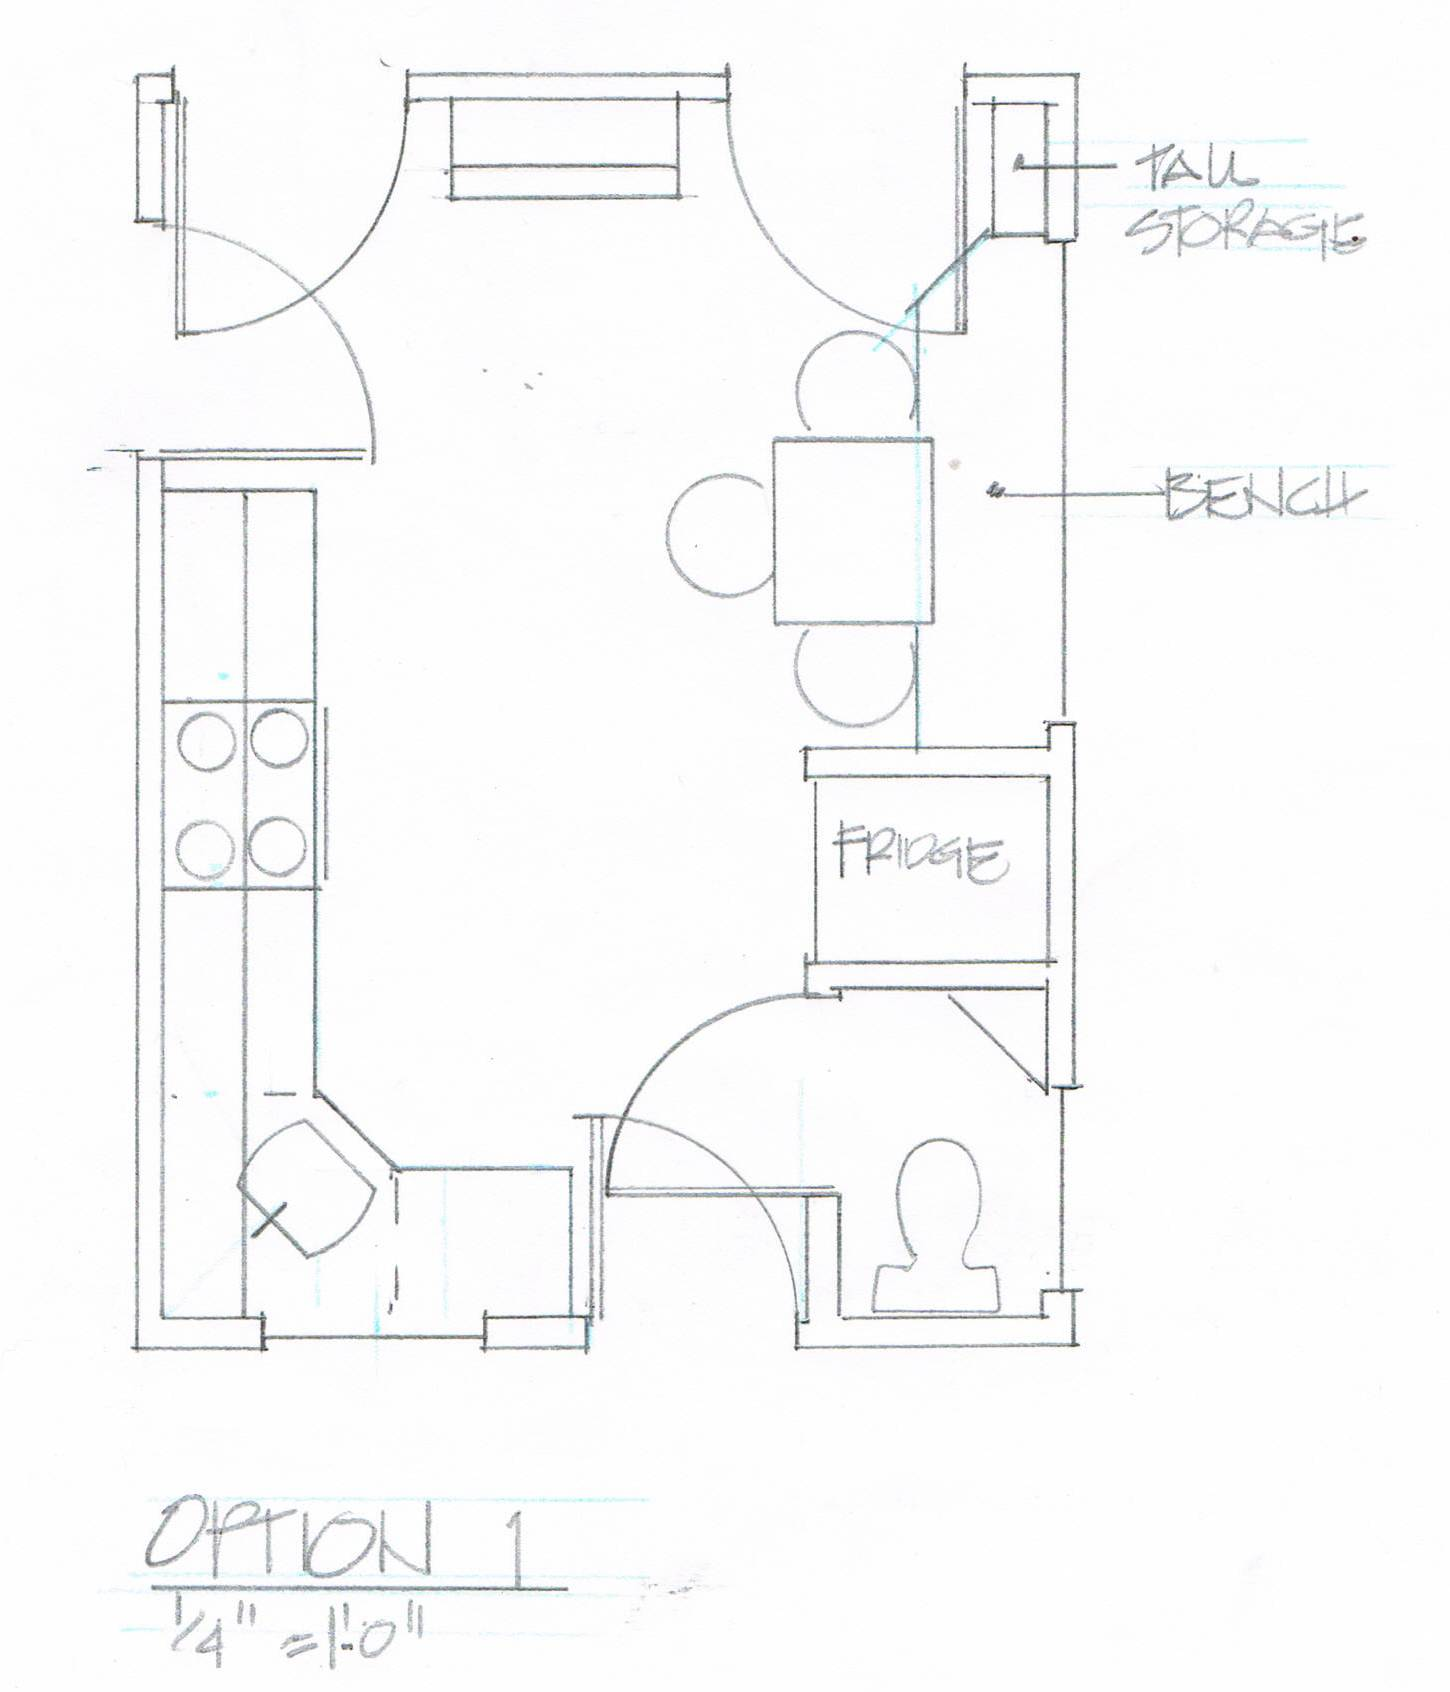 Kitchen Design Drawing At GetDrawings.com